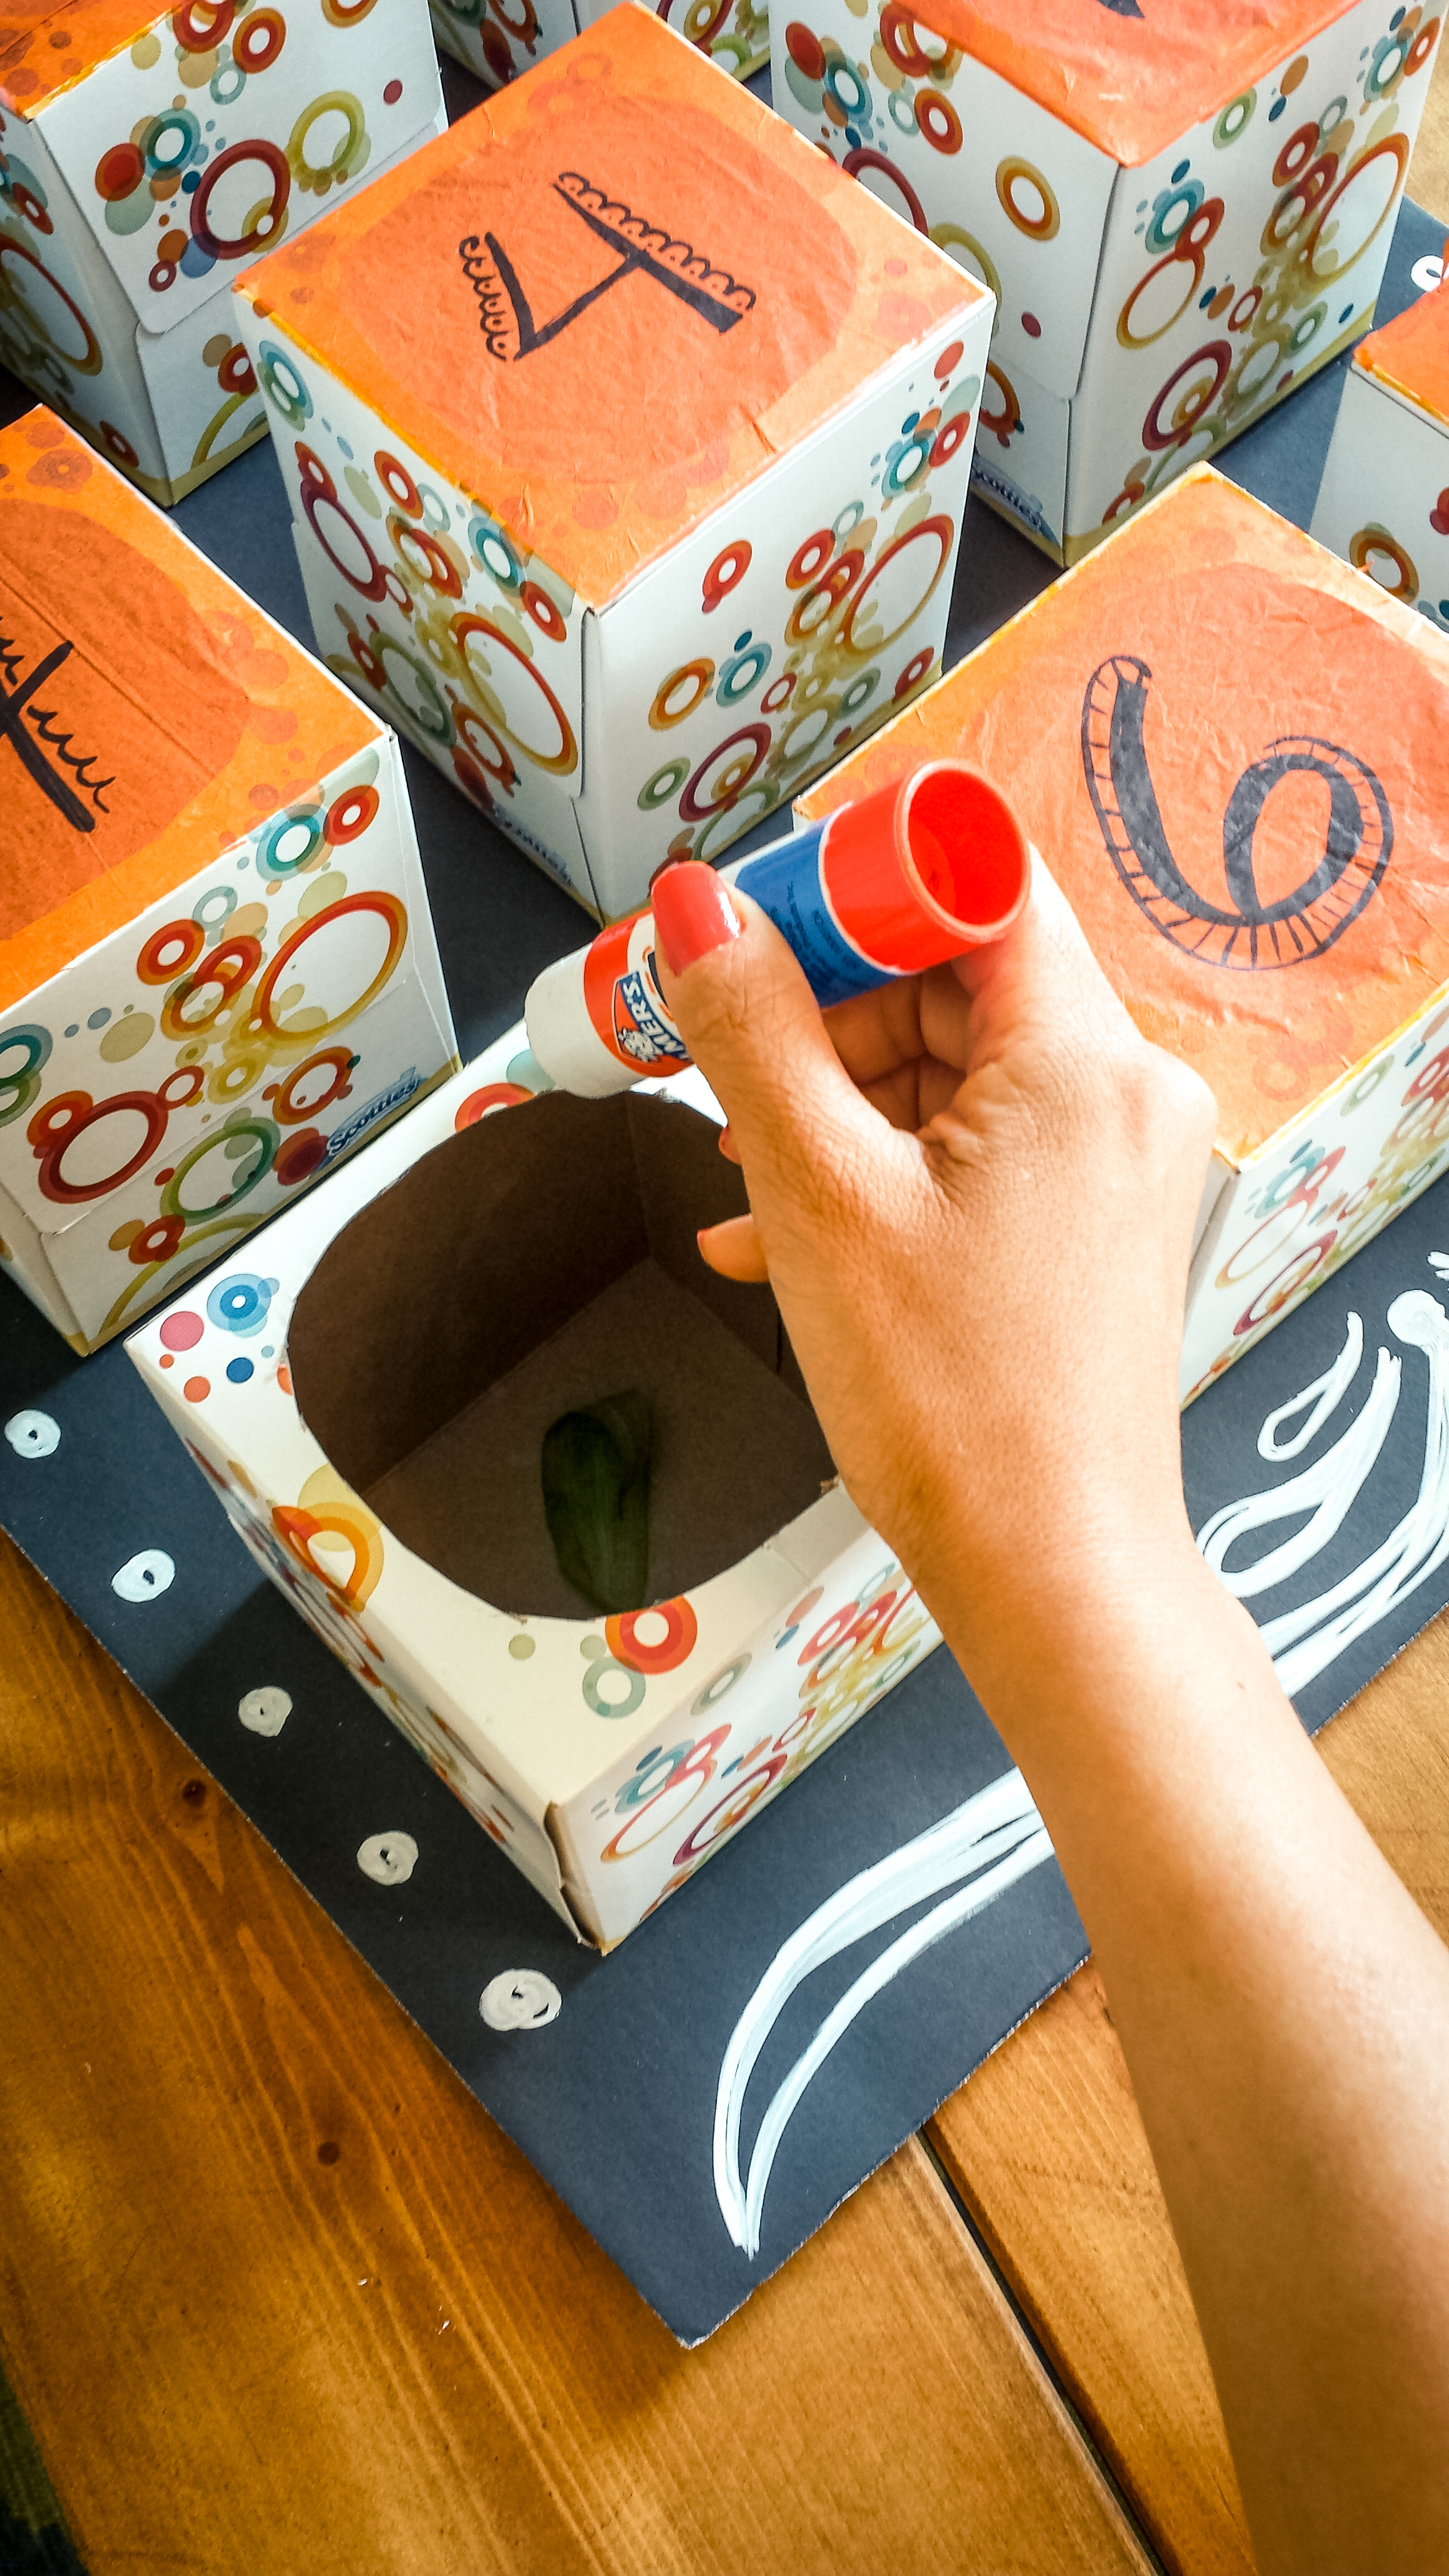 Take your glue stick and add a generous amount to the top of the kleenex box.